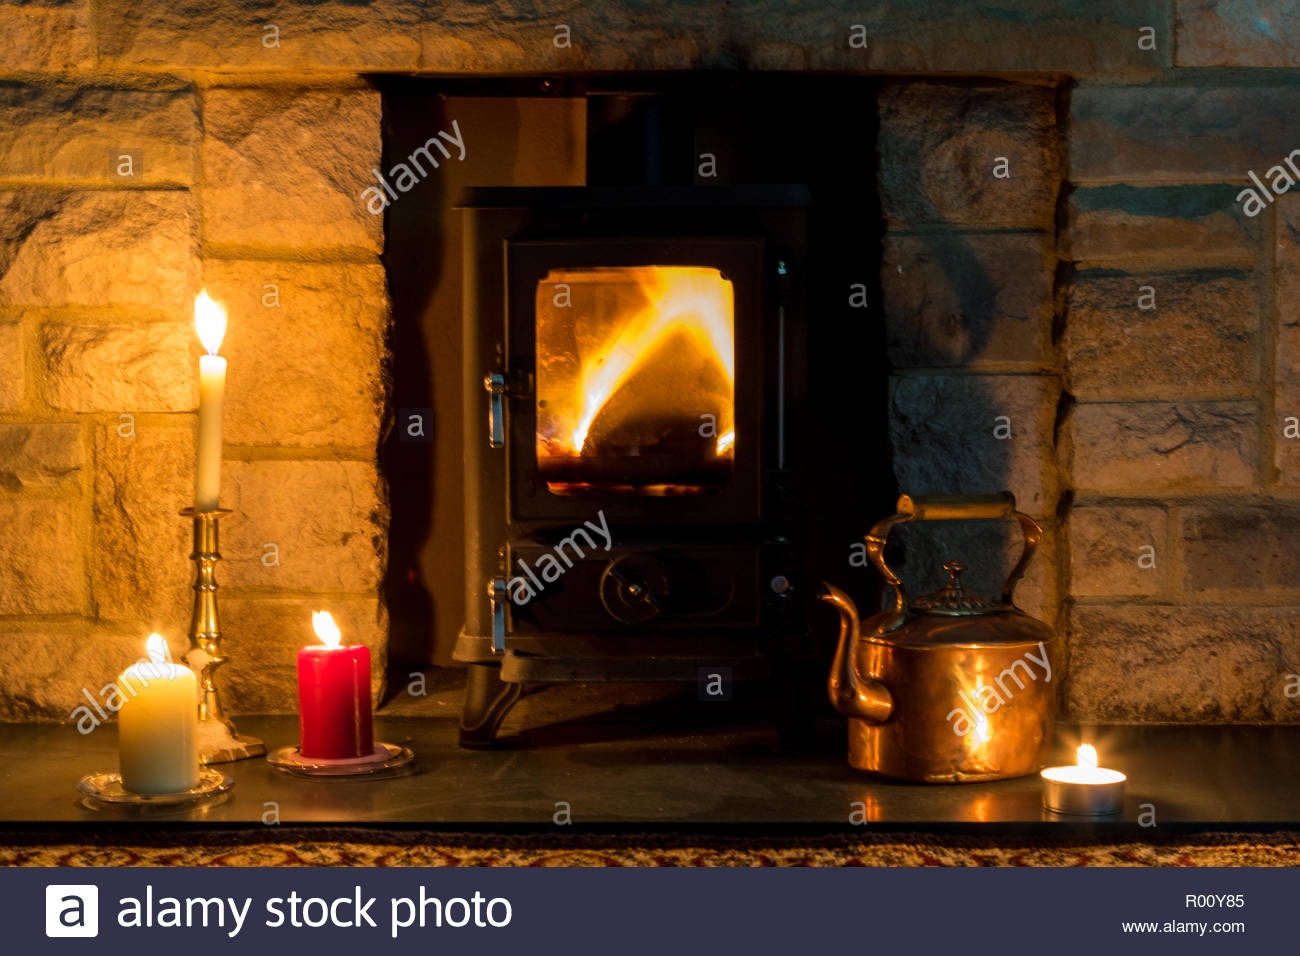 Hygge concept, a log burner, candles, and a copper kettle in a stone fireplace - Stock Image